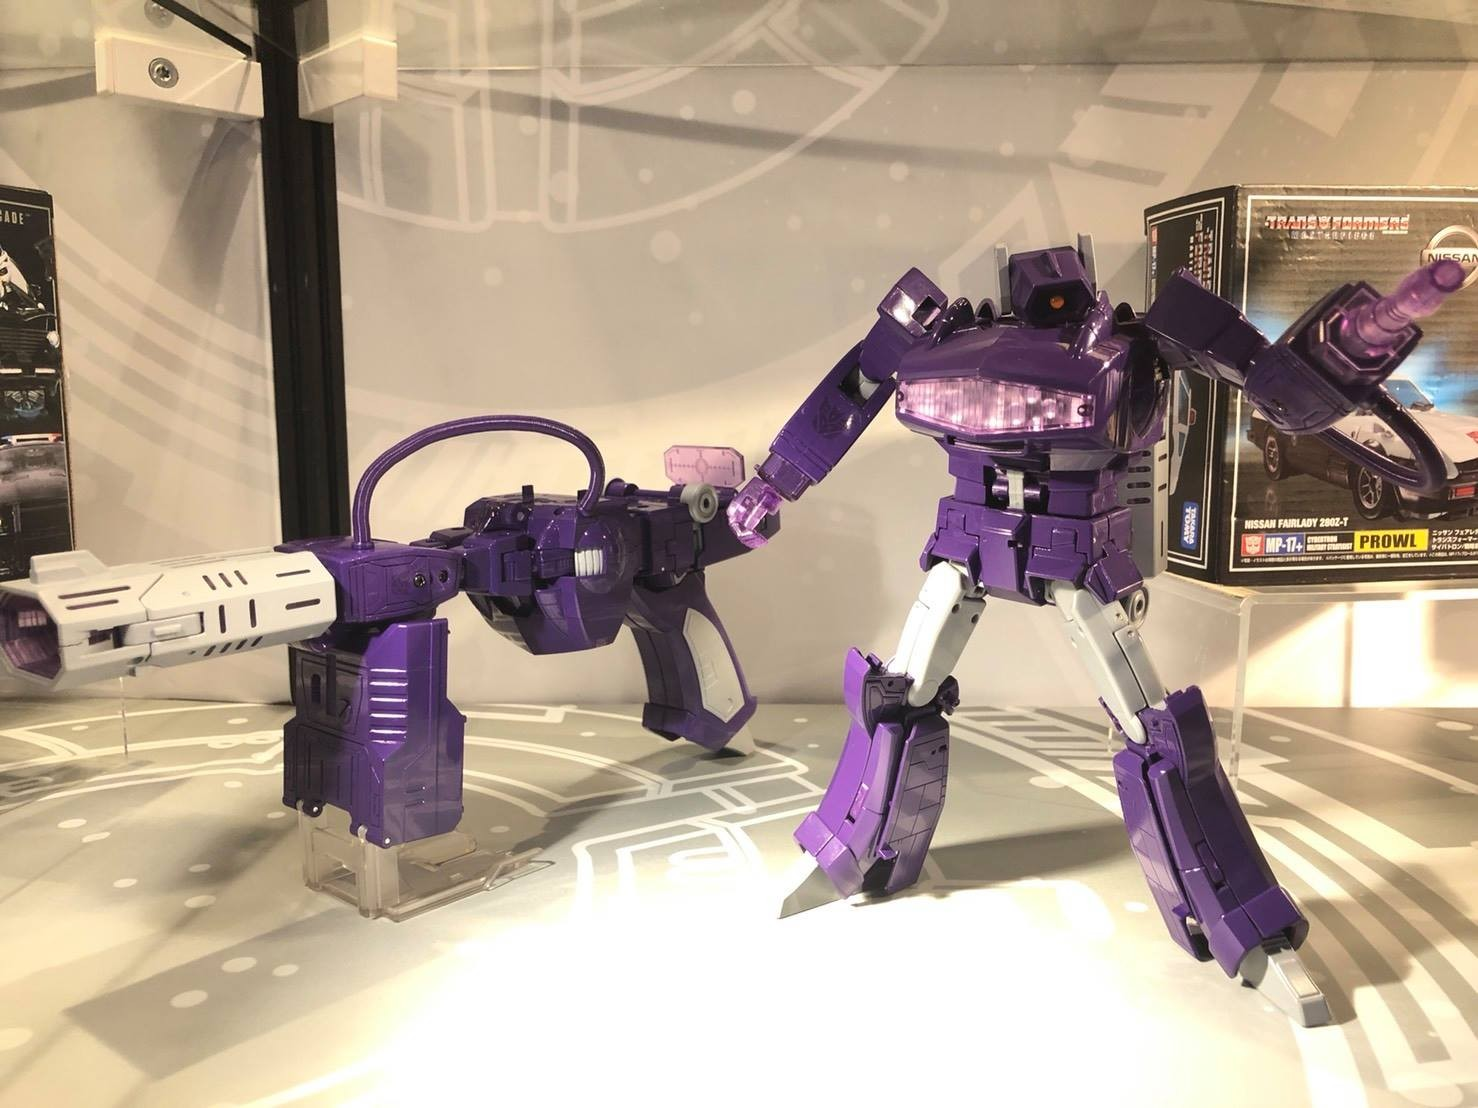 Transformers News: Takara Masterpiece Display at ACG Hong Kong 2018 with Prowl, Shockwave, Shadow Panther, Cordon